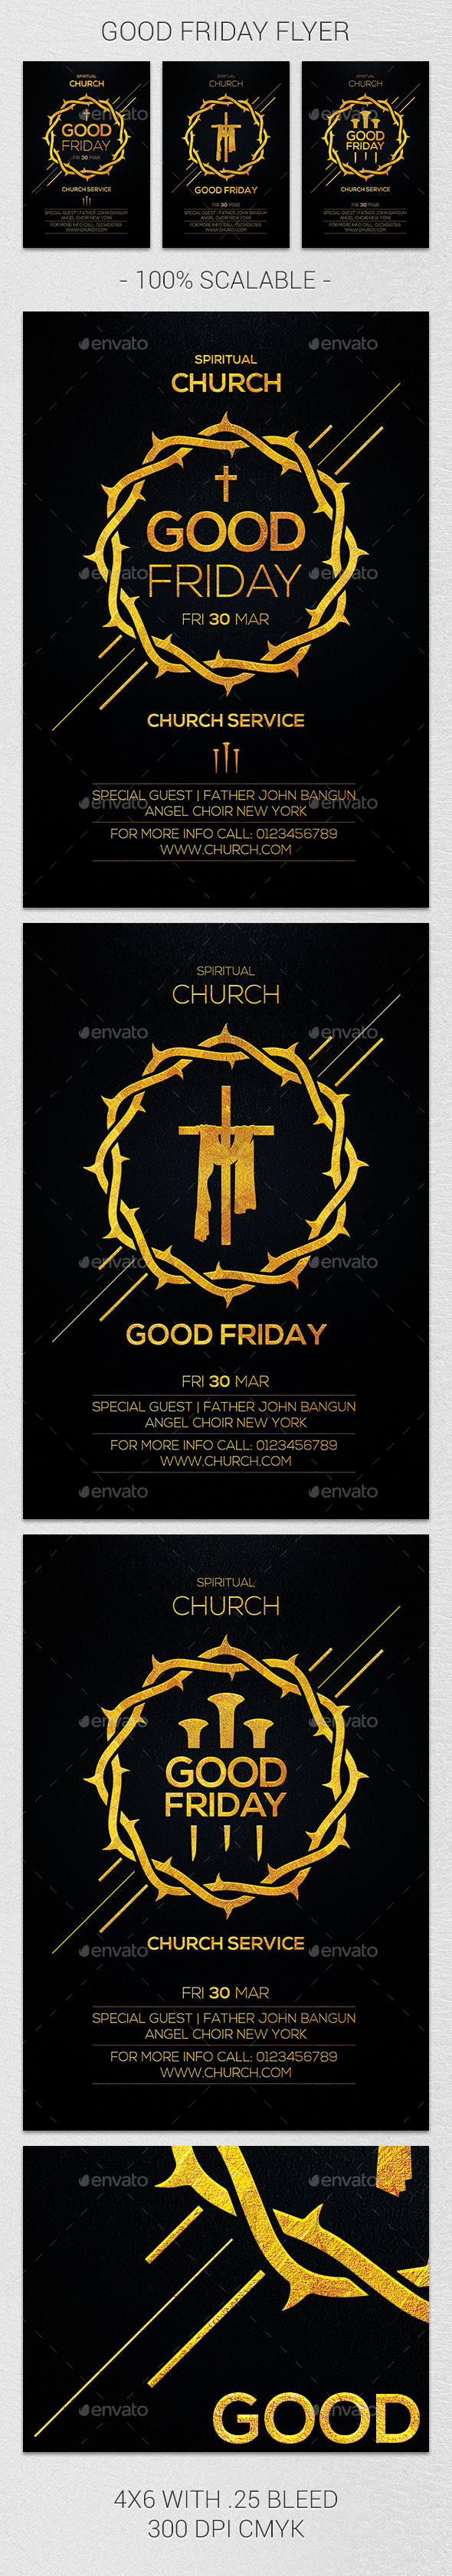 Good Friday Flyer - Church Flyers